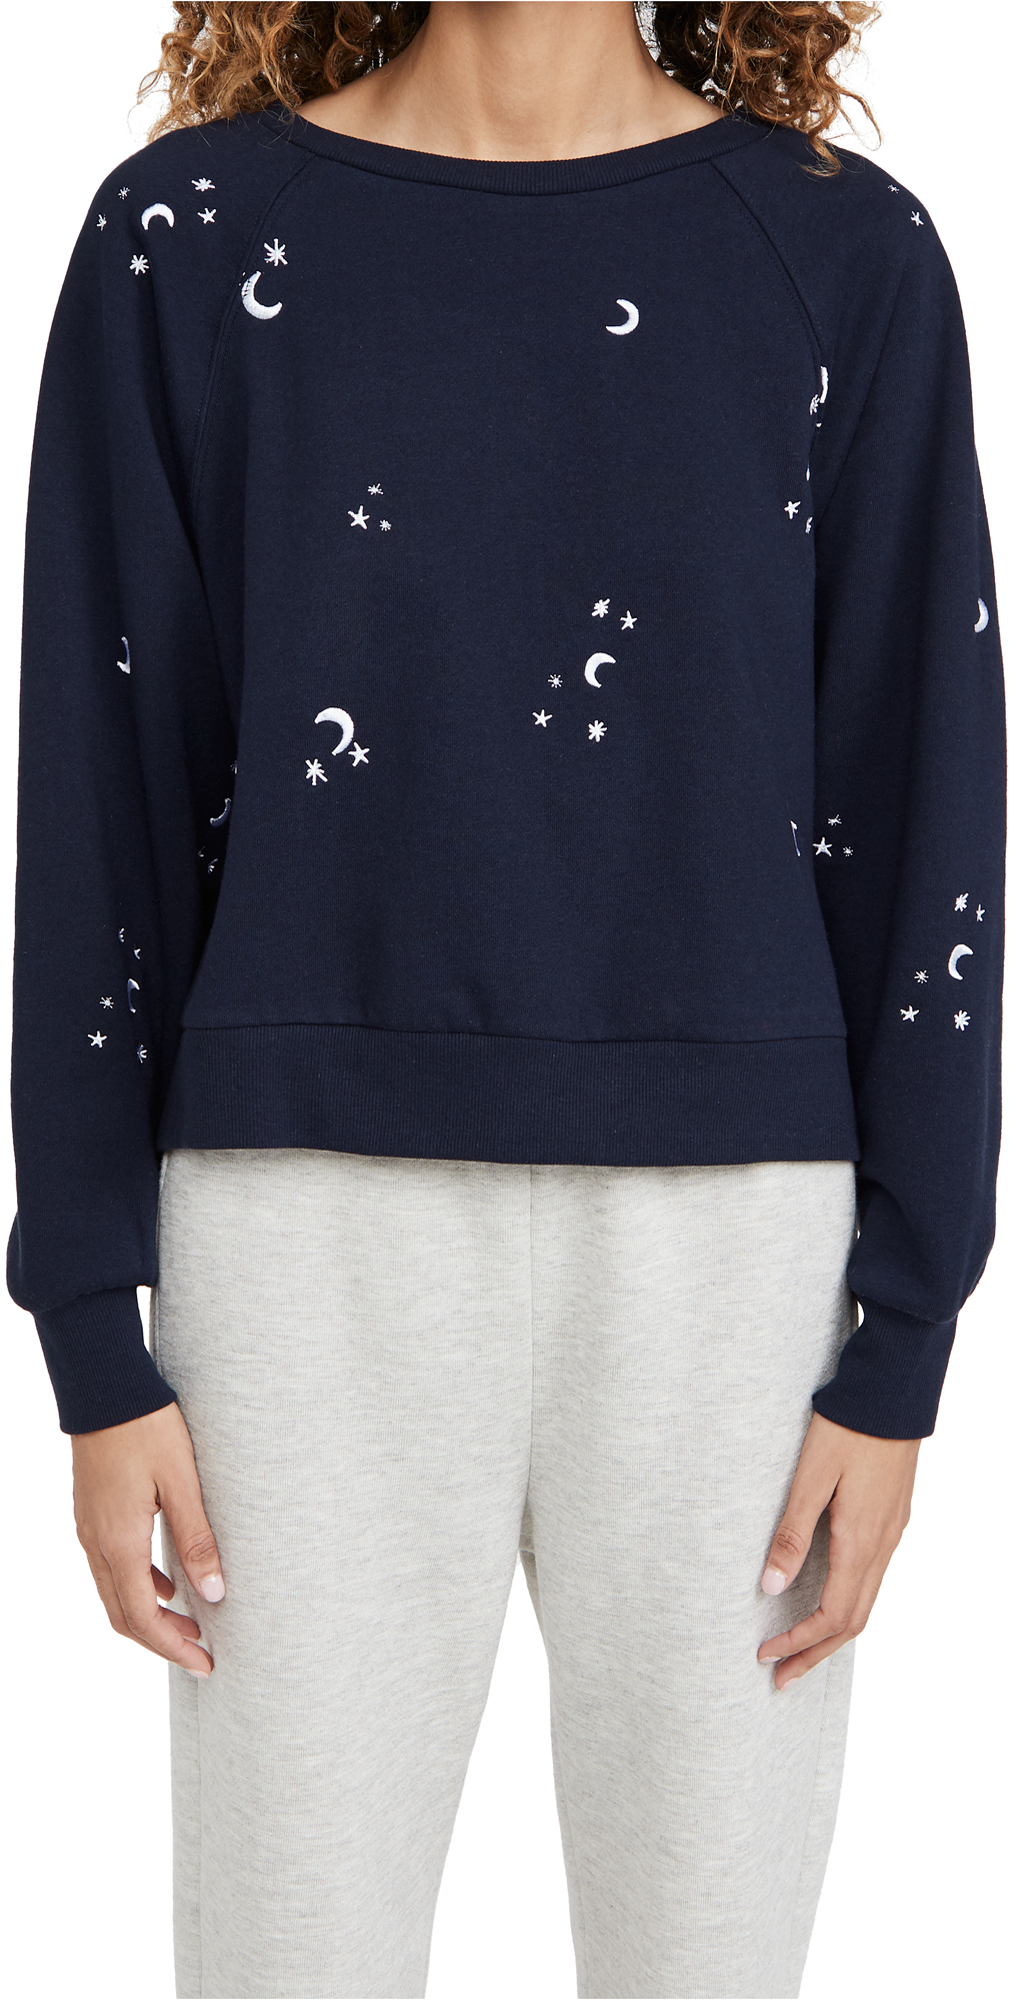 Honeydew Intimates Over The Moon Sweatshirt